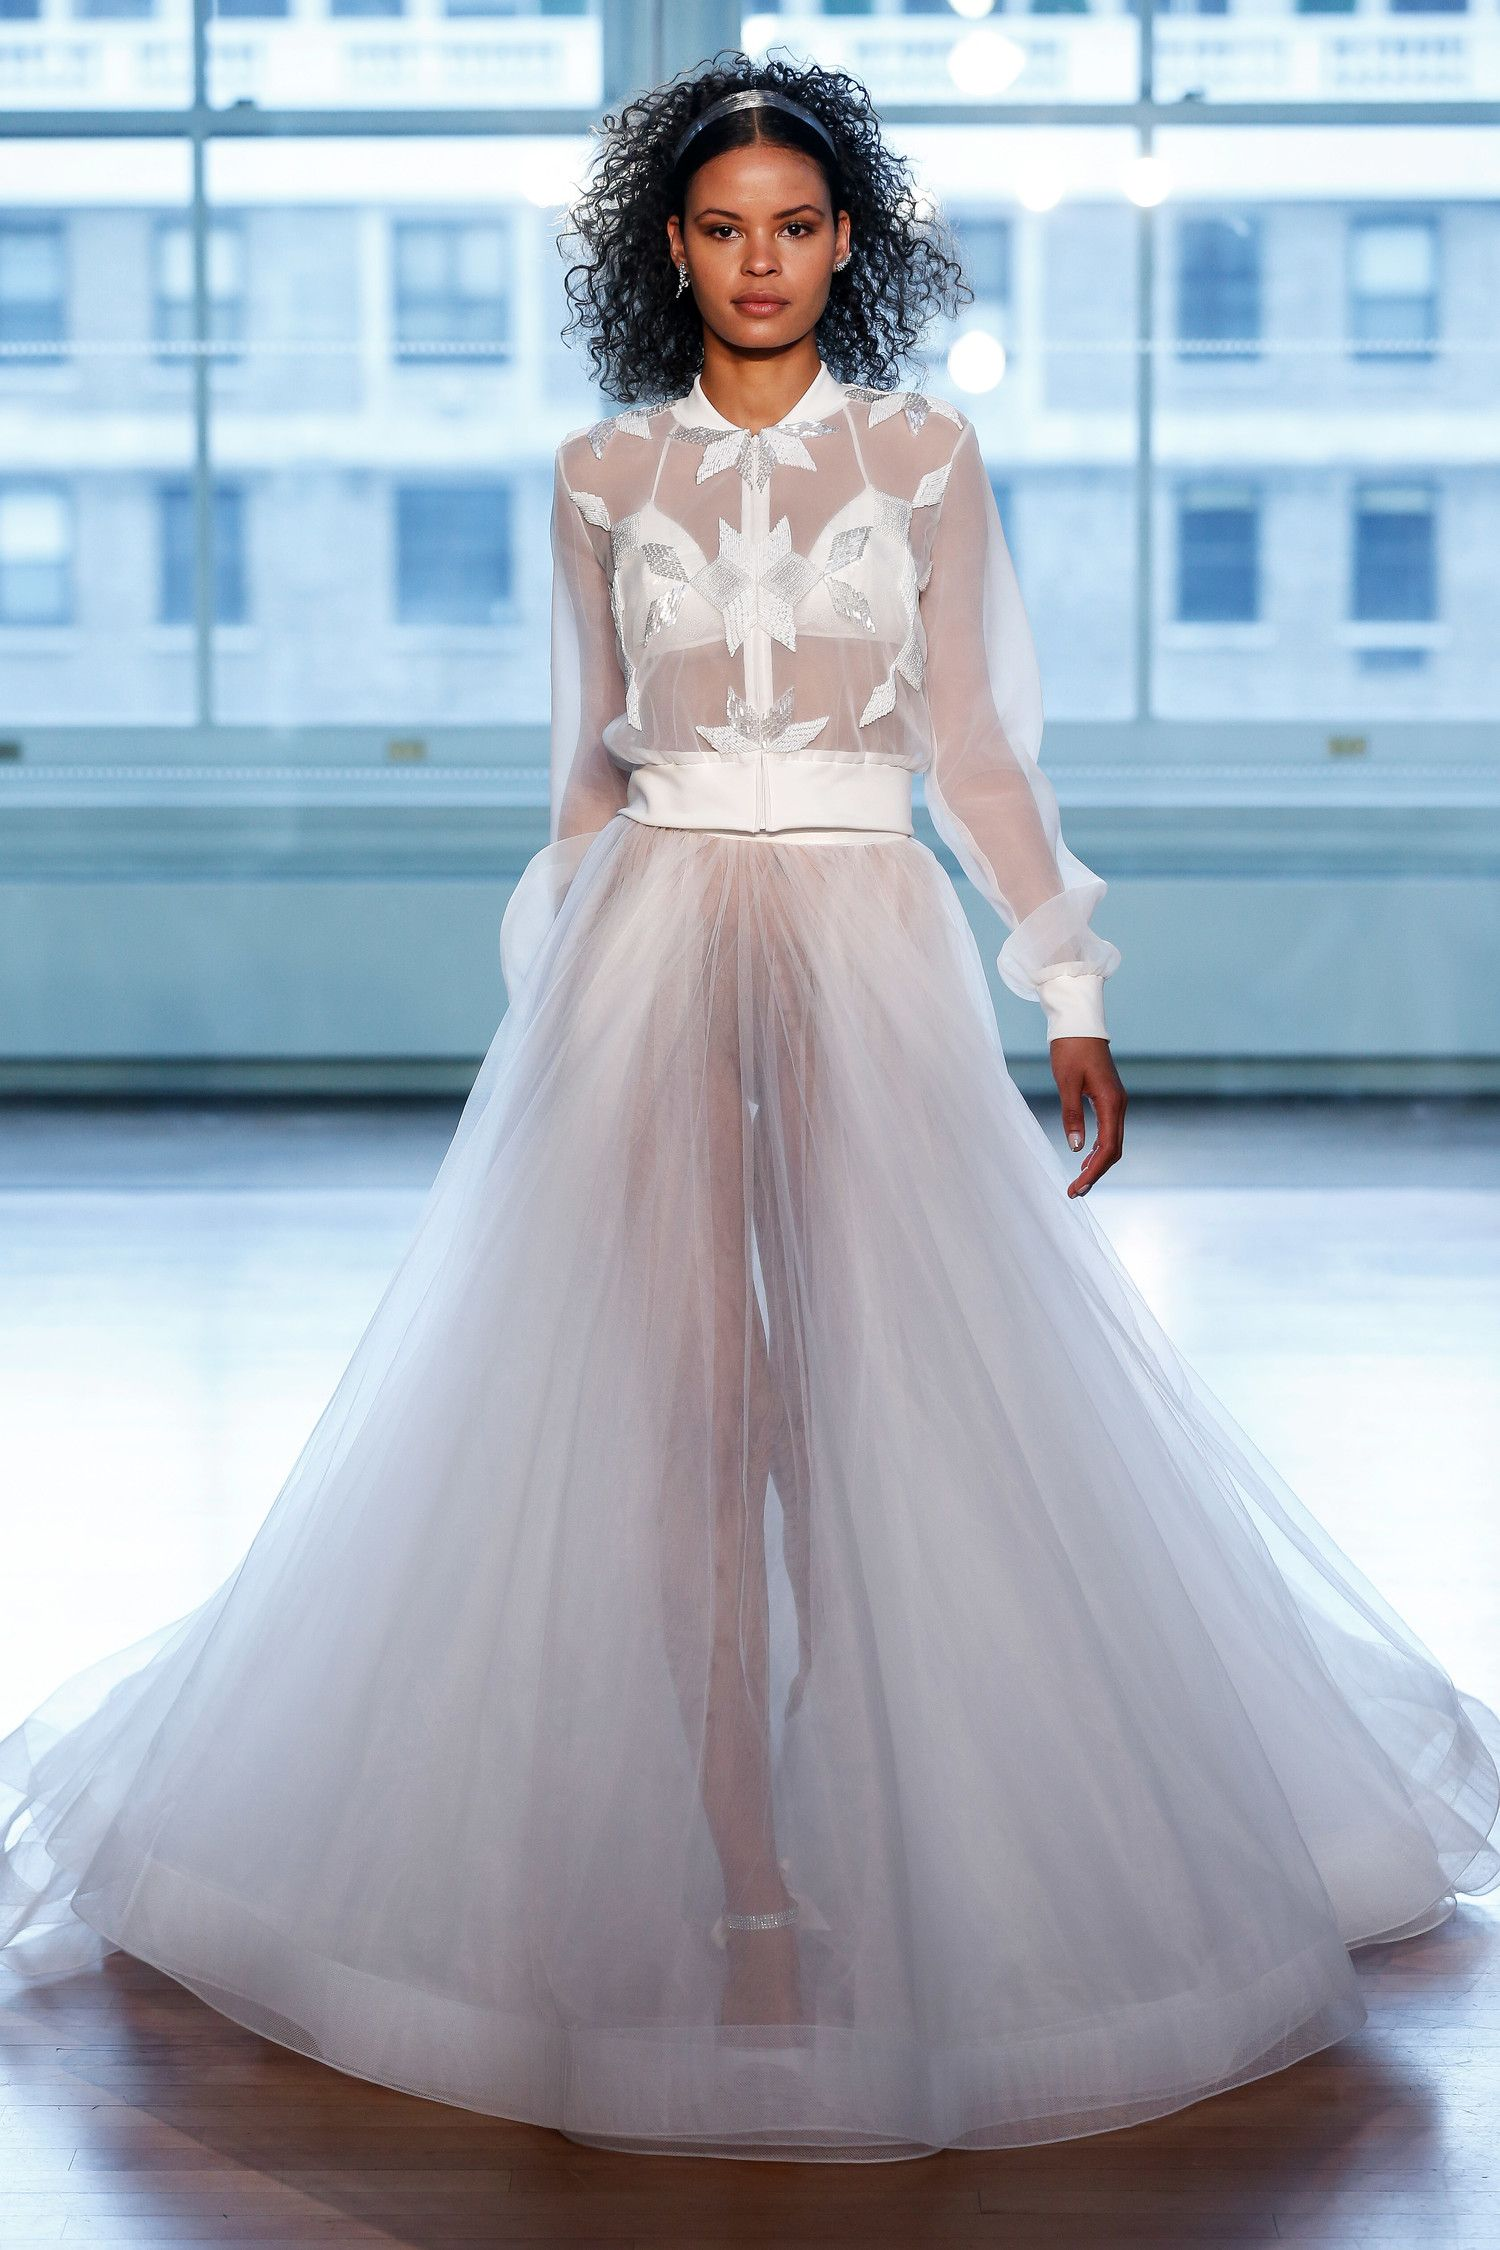 50cd23e95 7 Bridal Fashion Trends That Should Be on Your Radar. Wedding dress ...